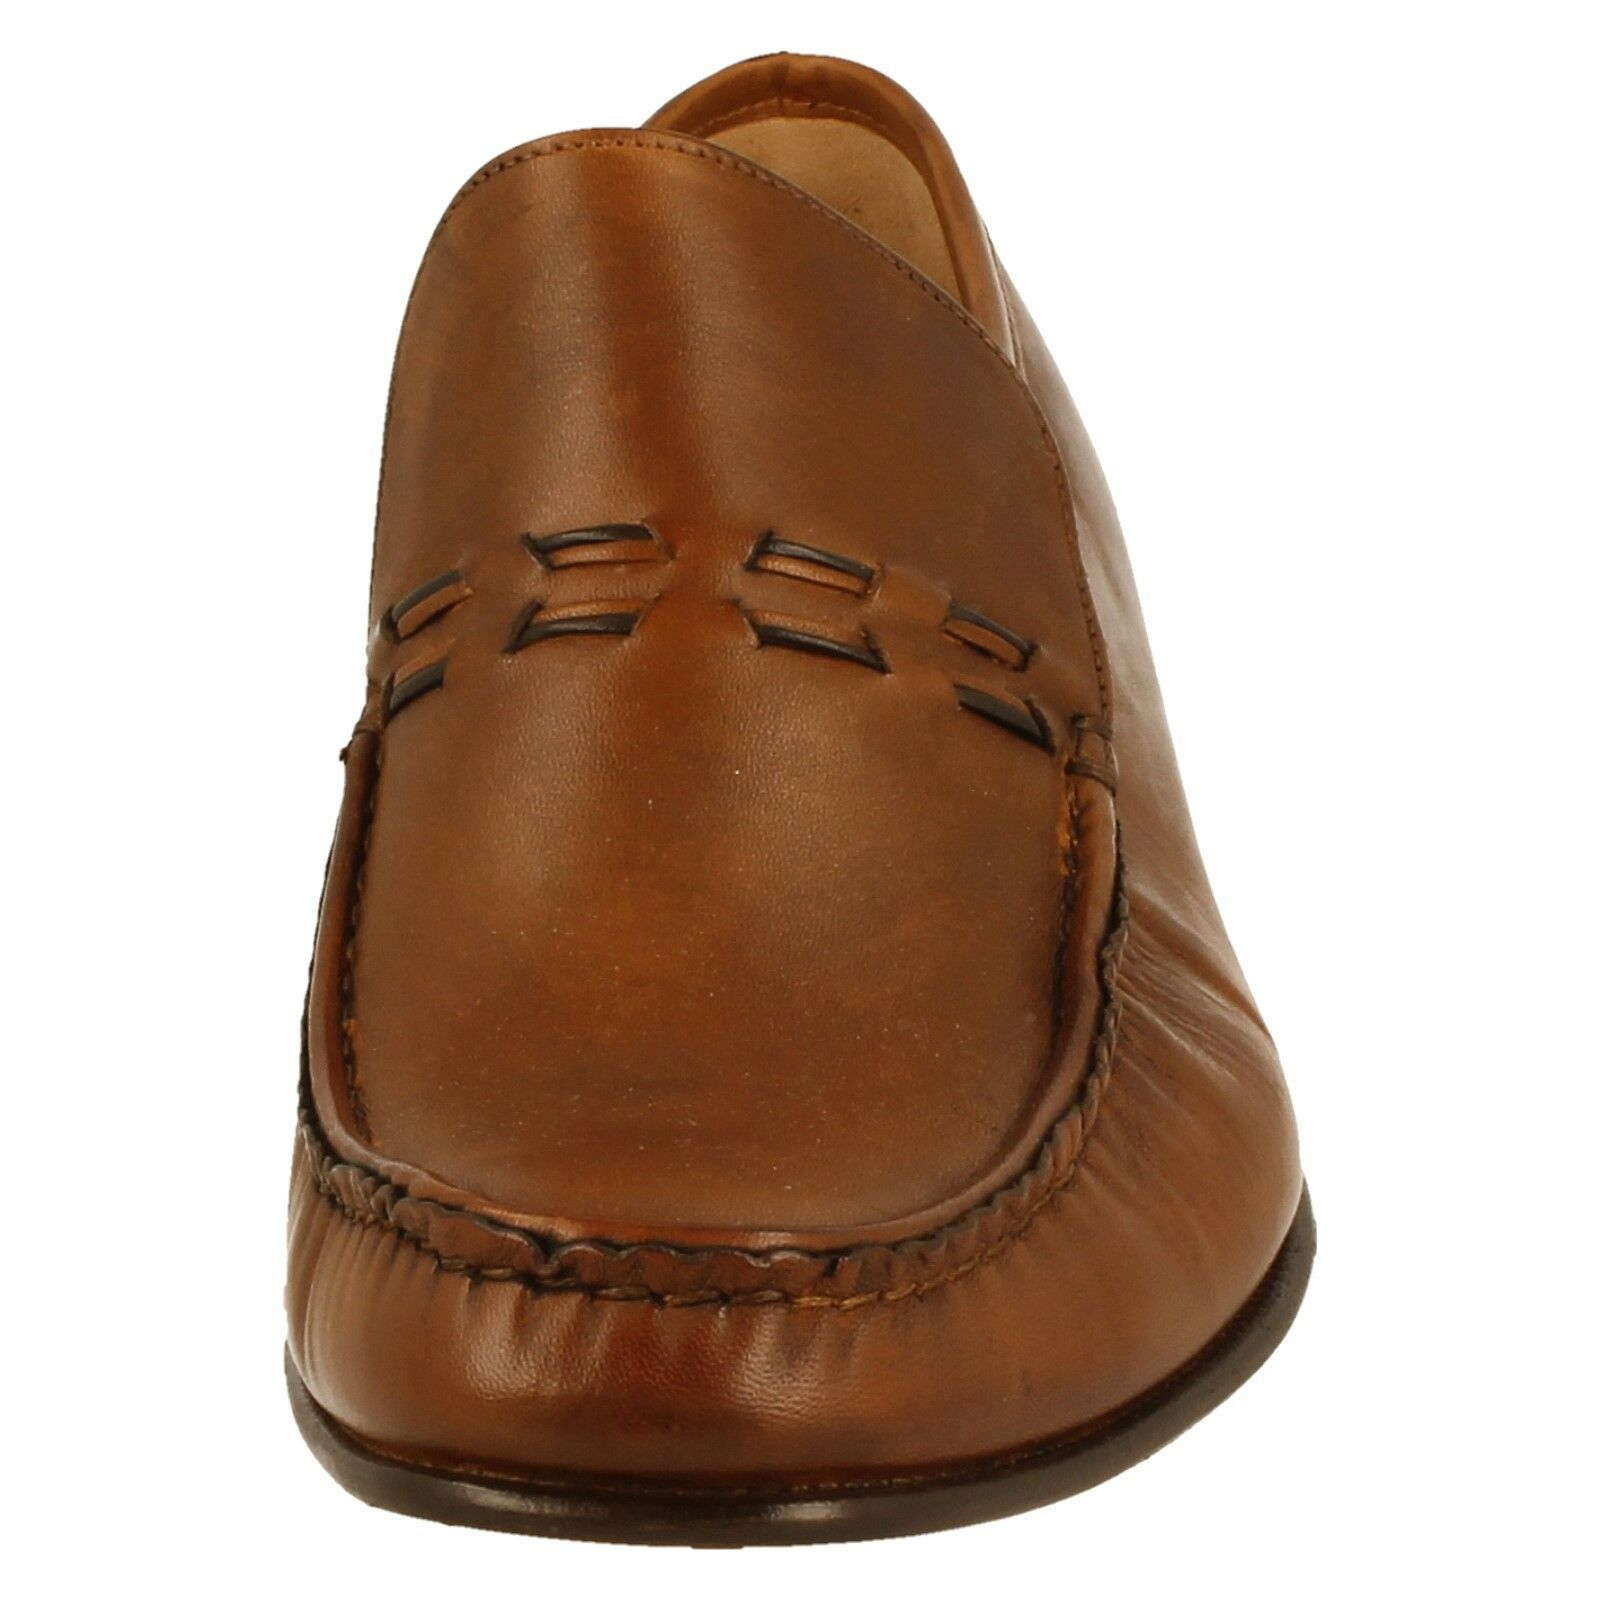 Mens Grenson Shoes - 9685